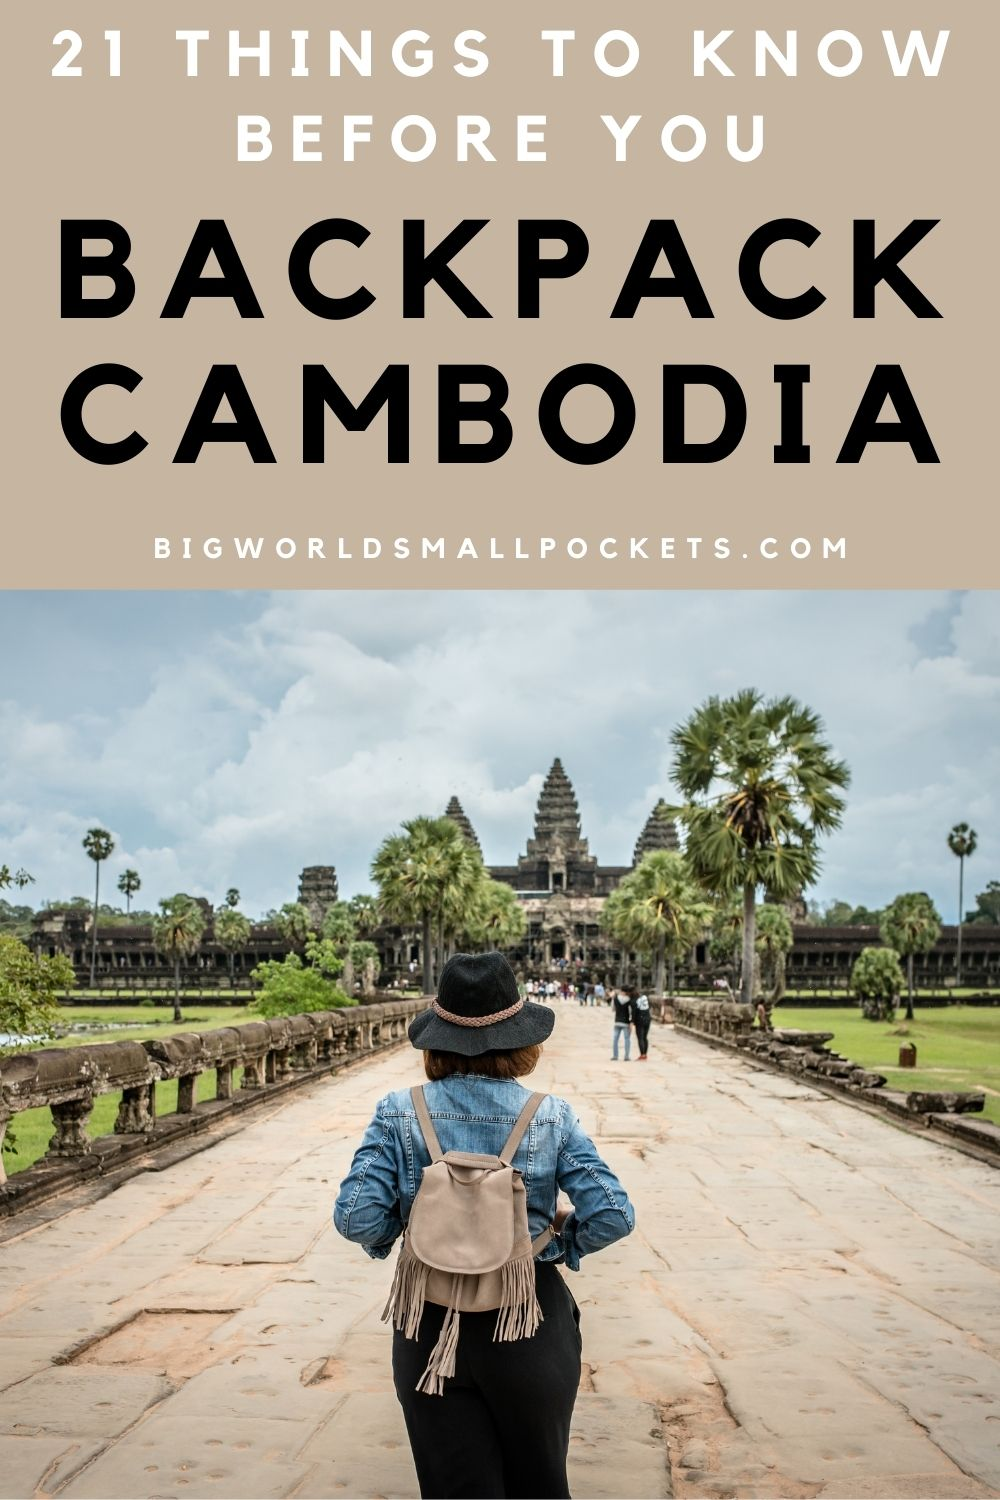 21 Things to Know Before You Backpack Cambodia